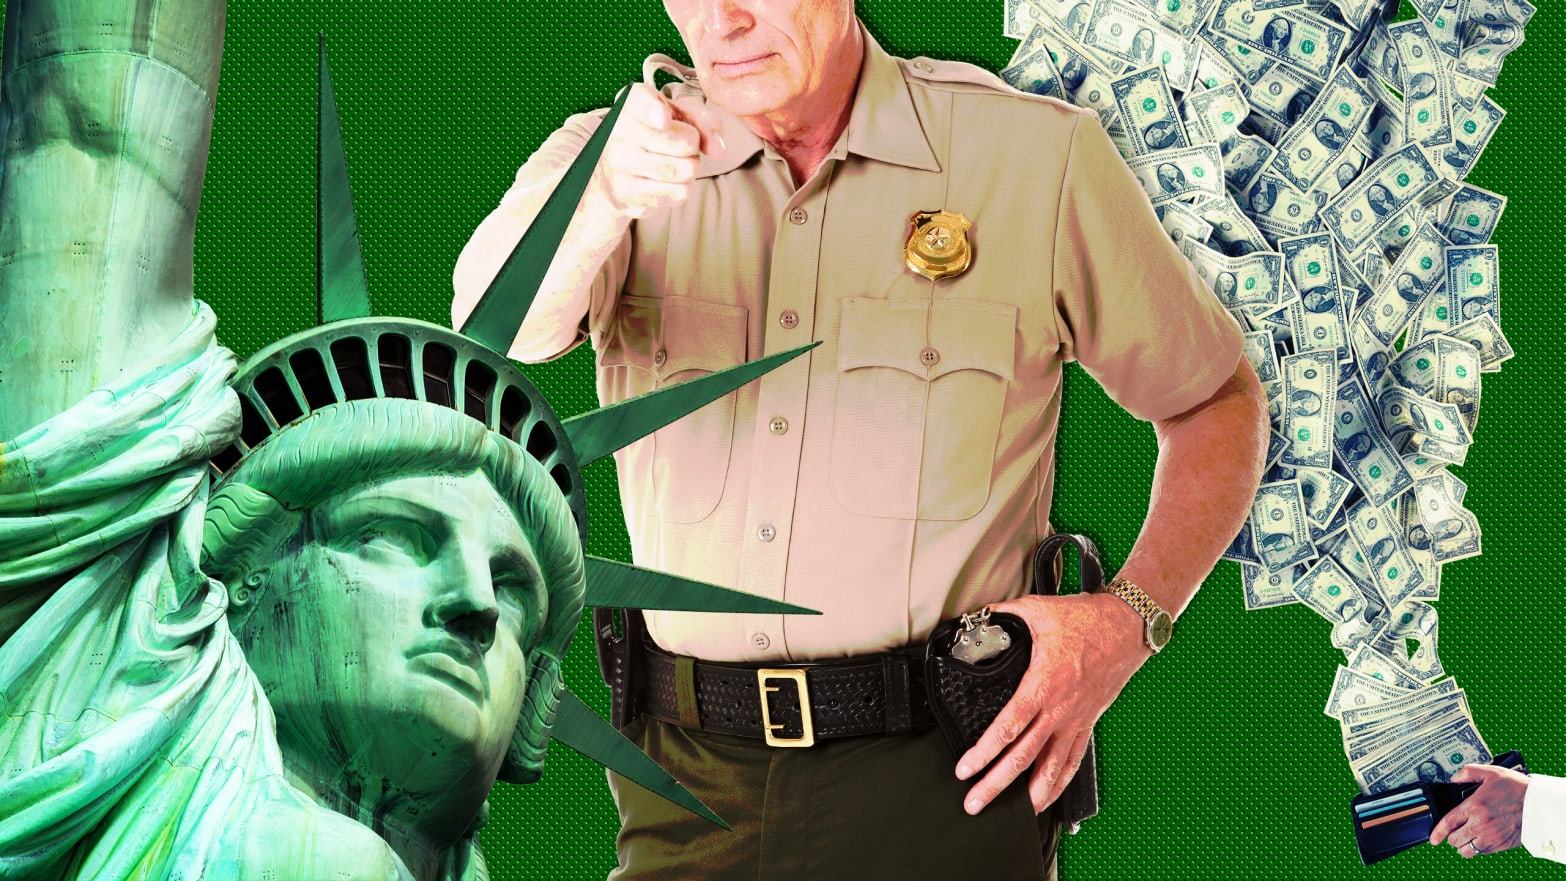 ICE Lets Sheriffs Arrest Immigrants, Then Pays to Keep Them